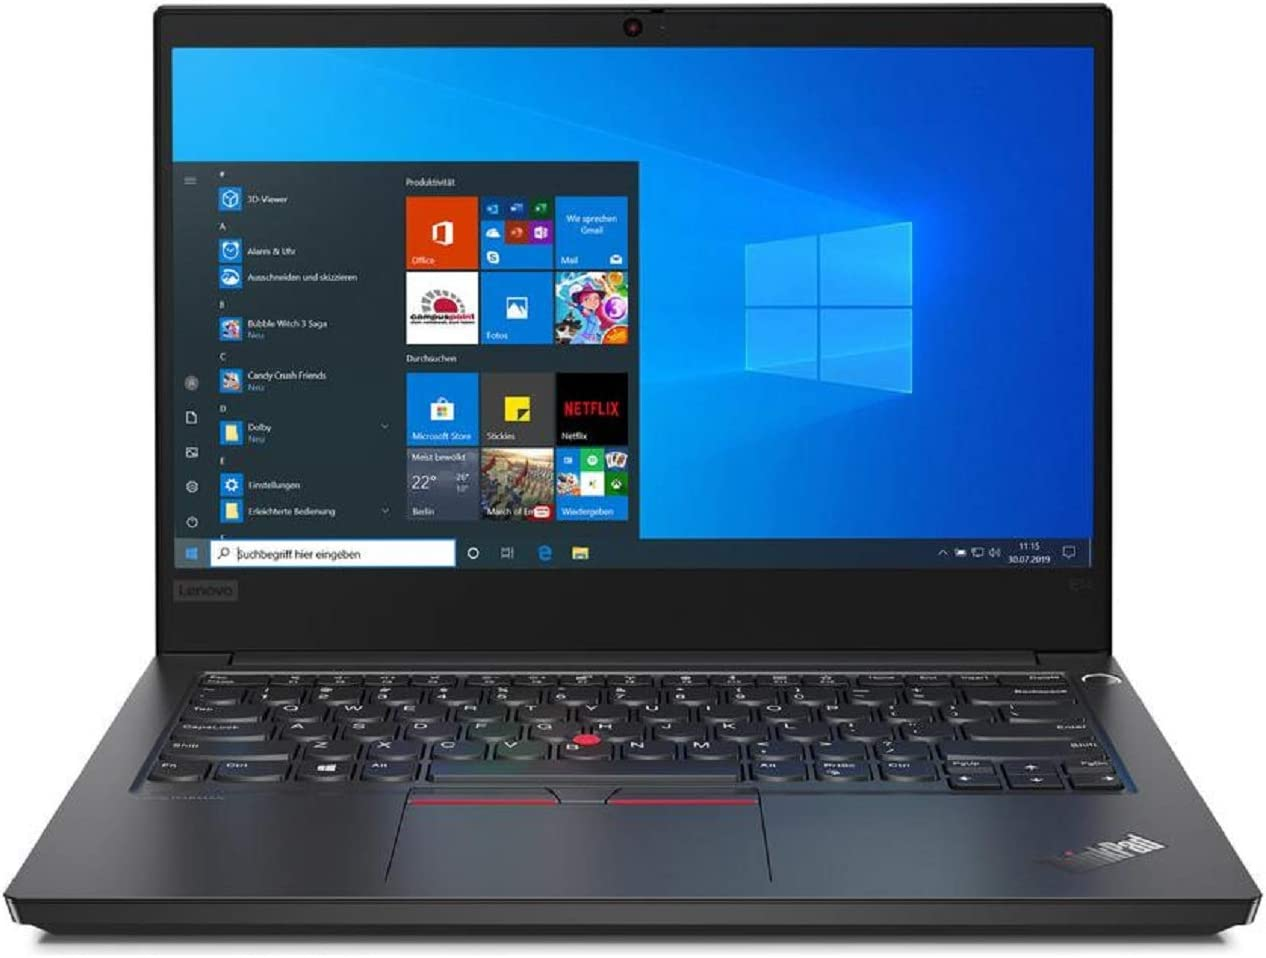 "OEM Lenovo ThinkPad E14 14"" FHD Display 1920x1080 IPS, Intel Quad Core i5-10210U, 16GB RAM, 1TB SSD, W10P, Business Laptop"